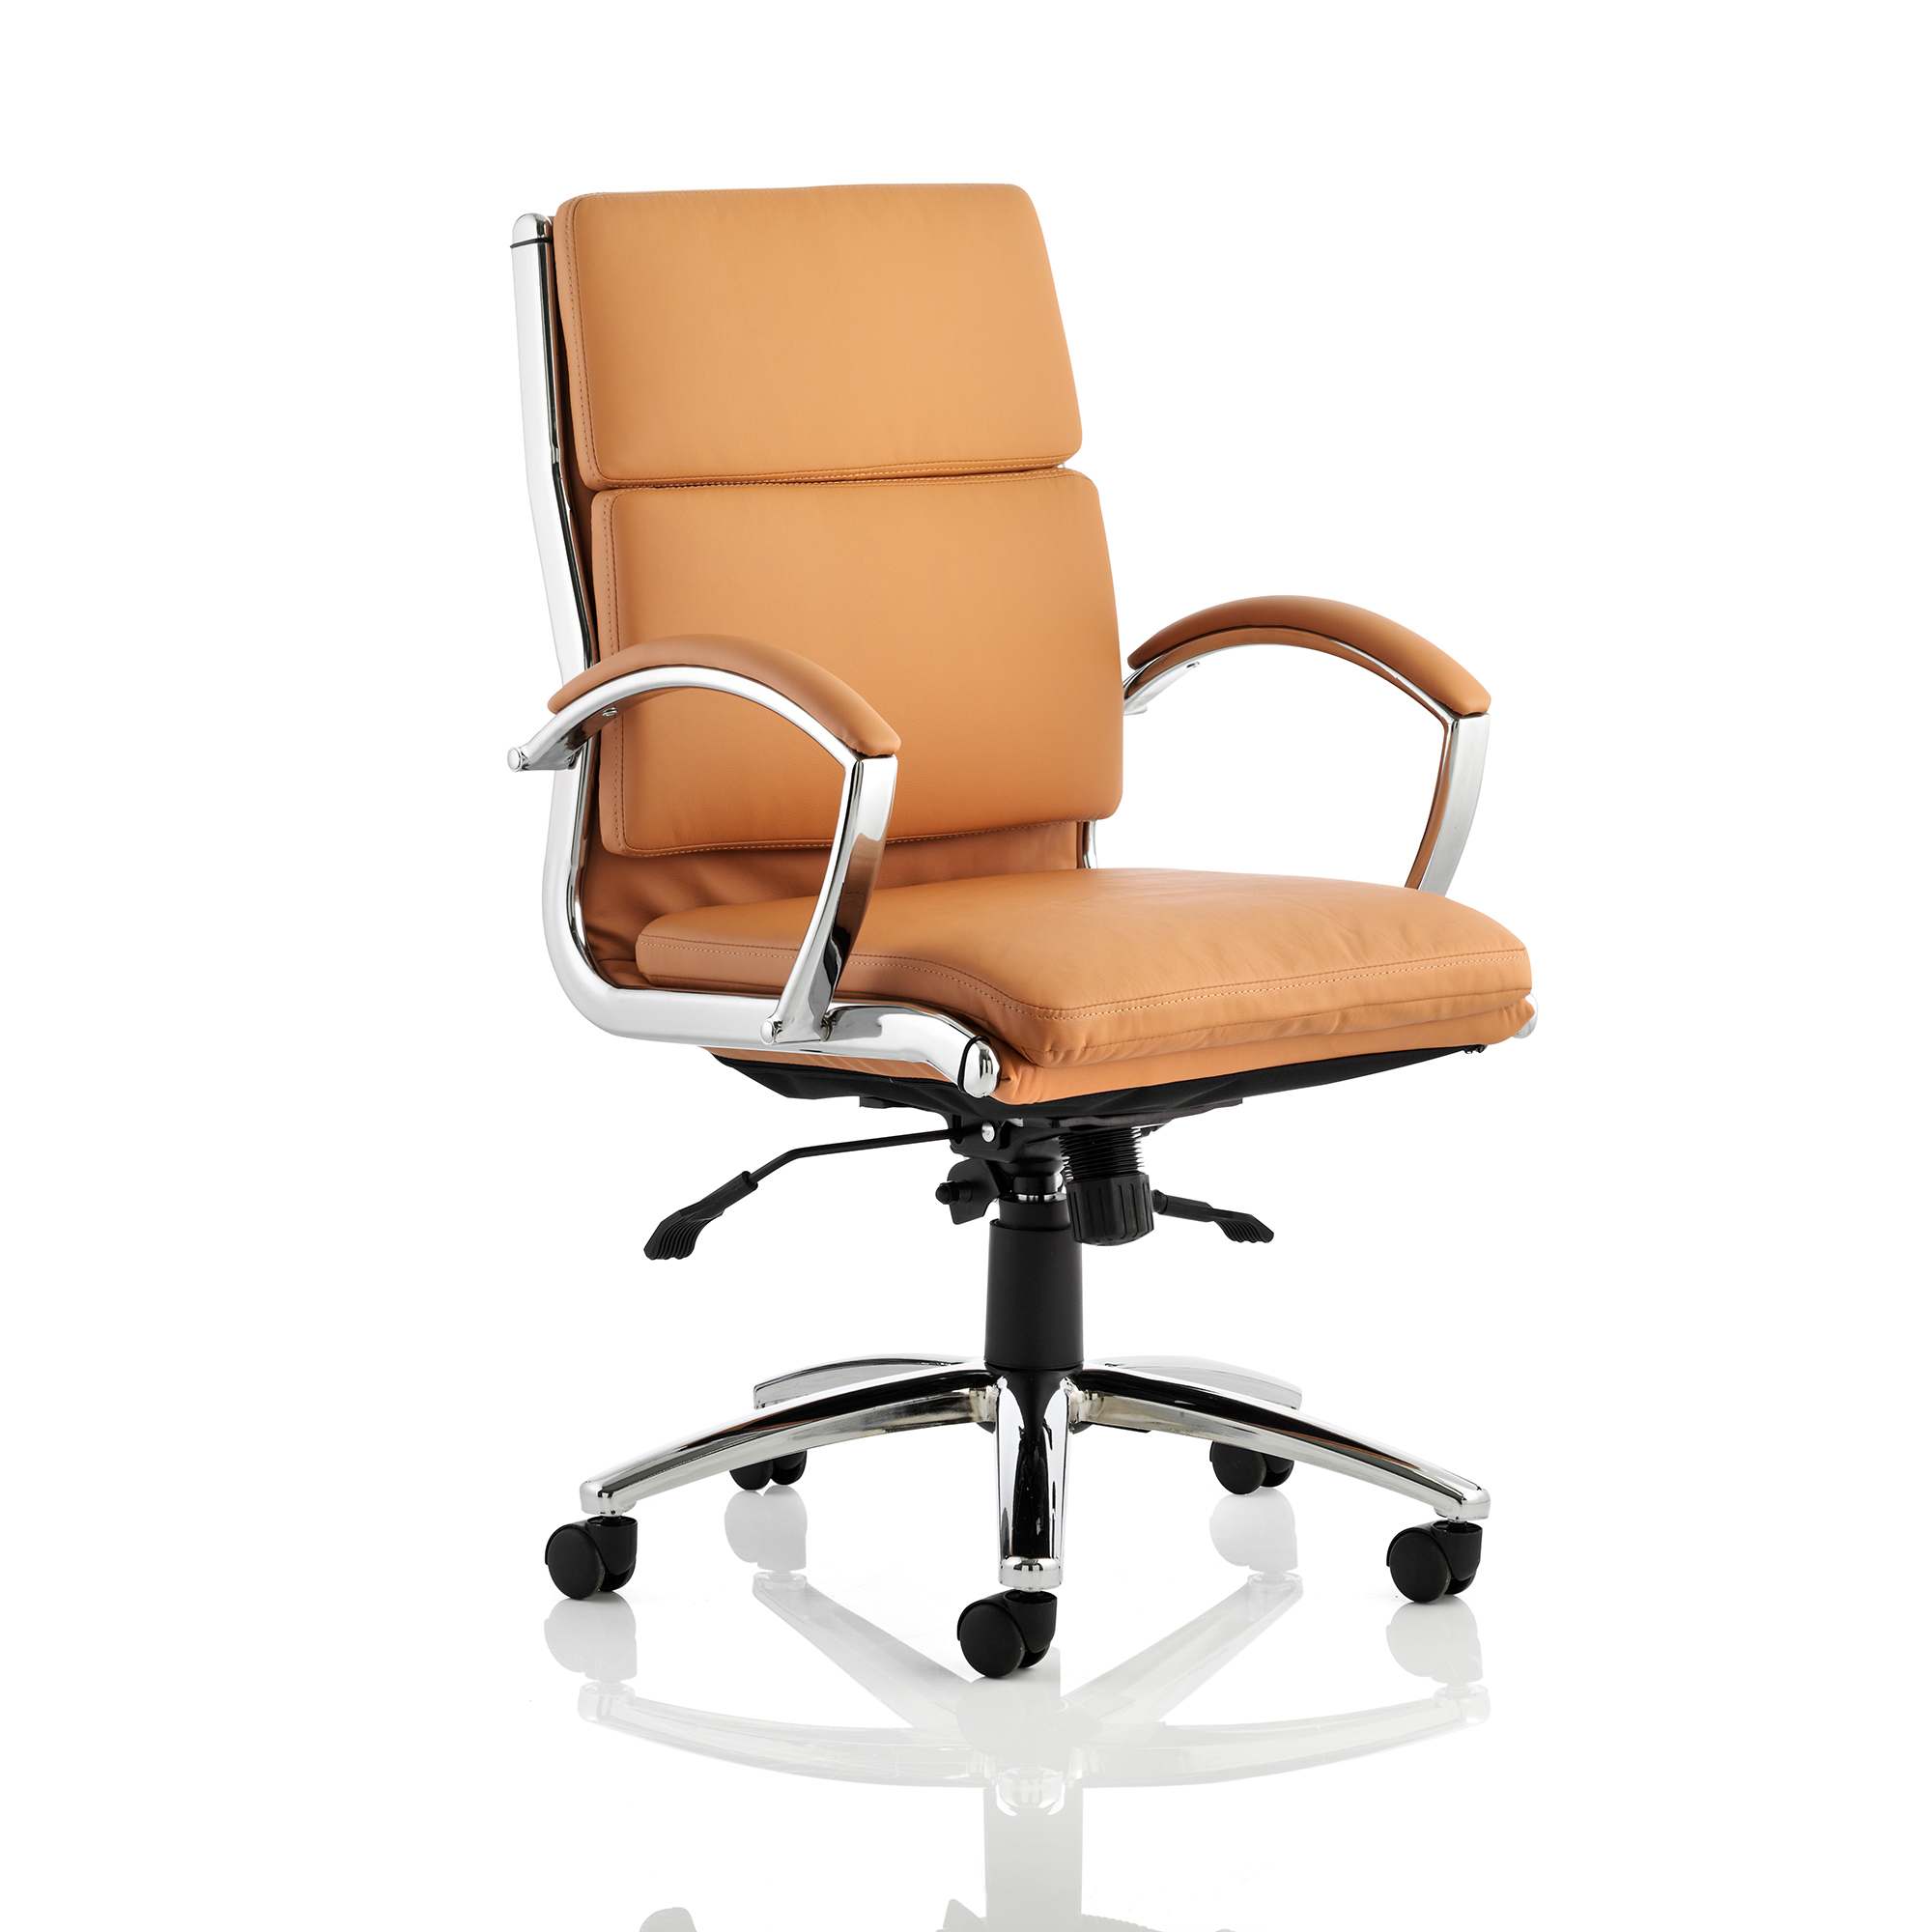 Adroit Classic Executive Chair With Arms Medium Back Tan Ref EX000011